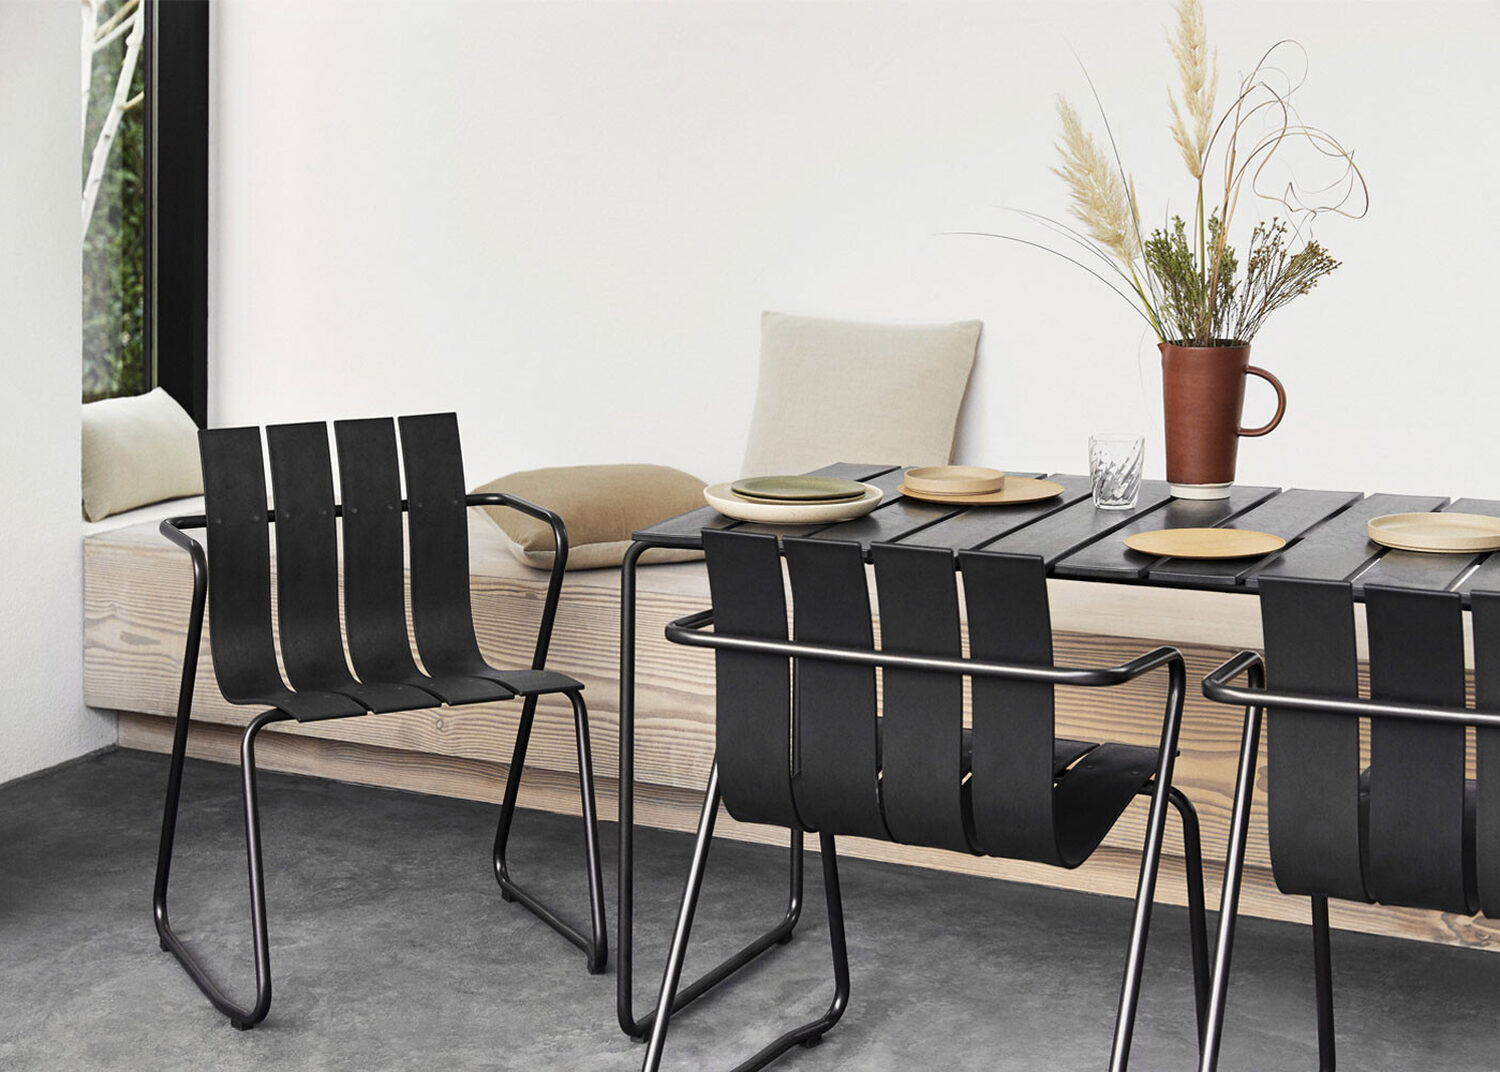 Sourcing Sustainable Office Furniture